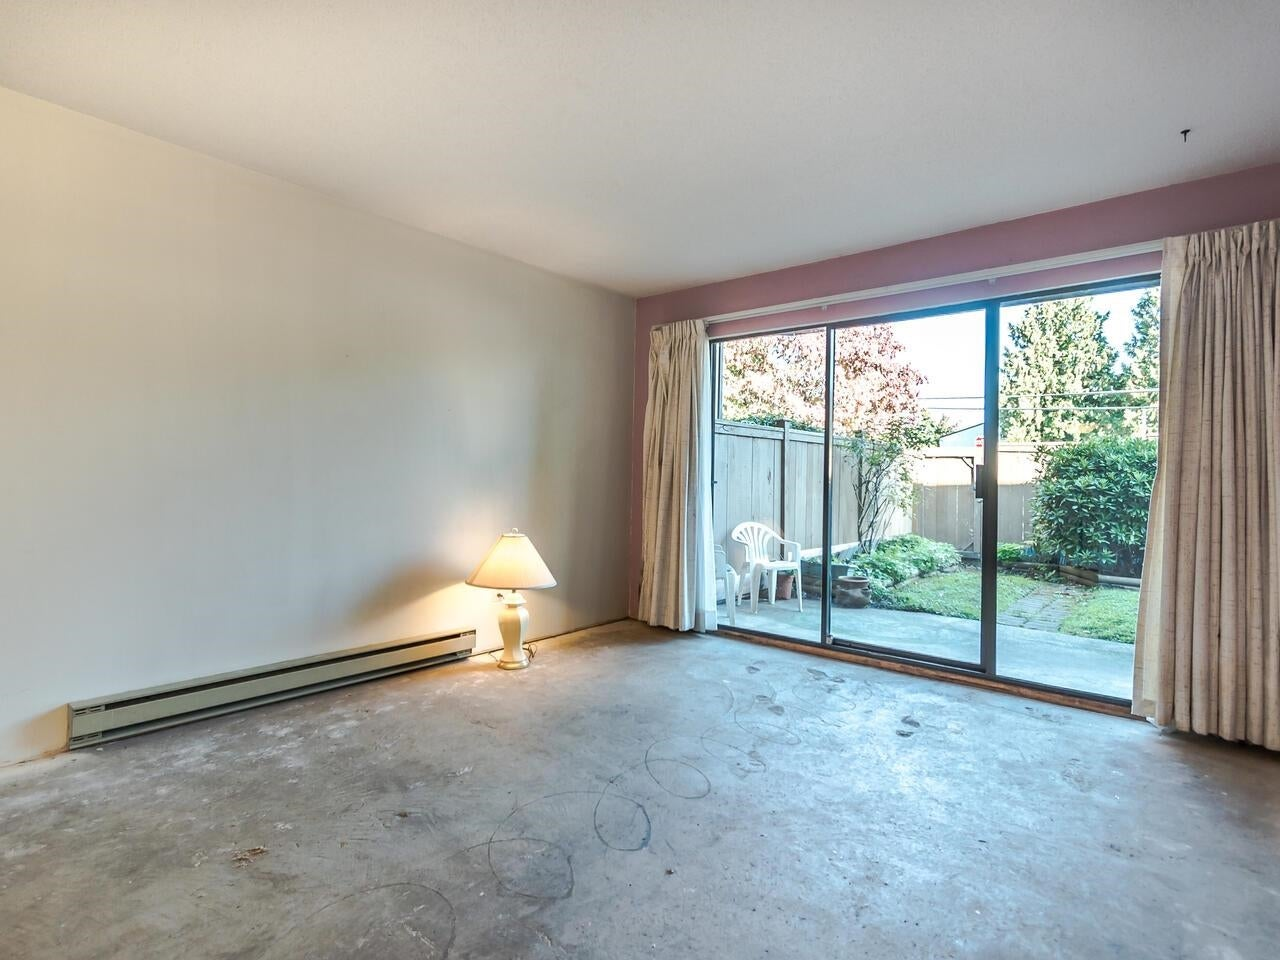 107 5191 203 STREET - Langley City Apartment/Condo for sale, 2 Bedrooms (R2625712) - #5